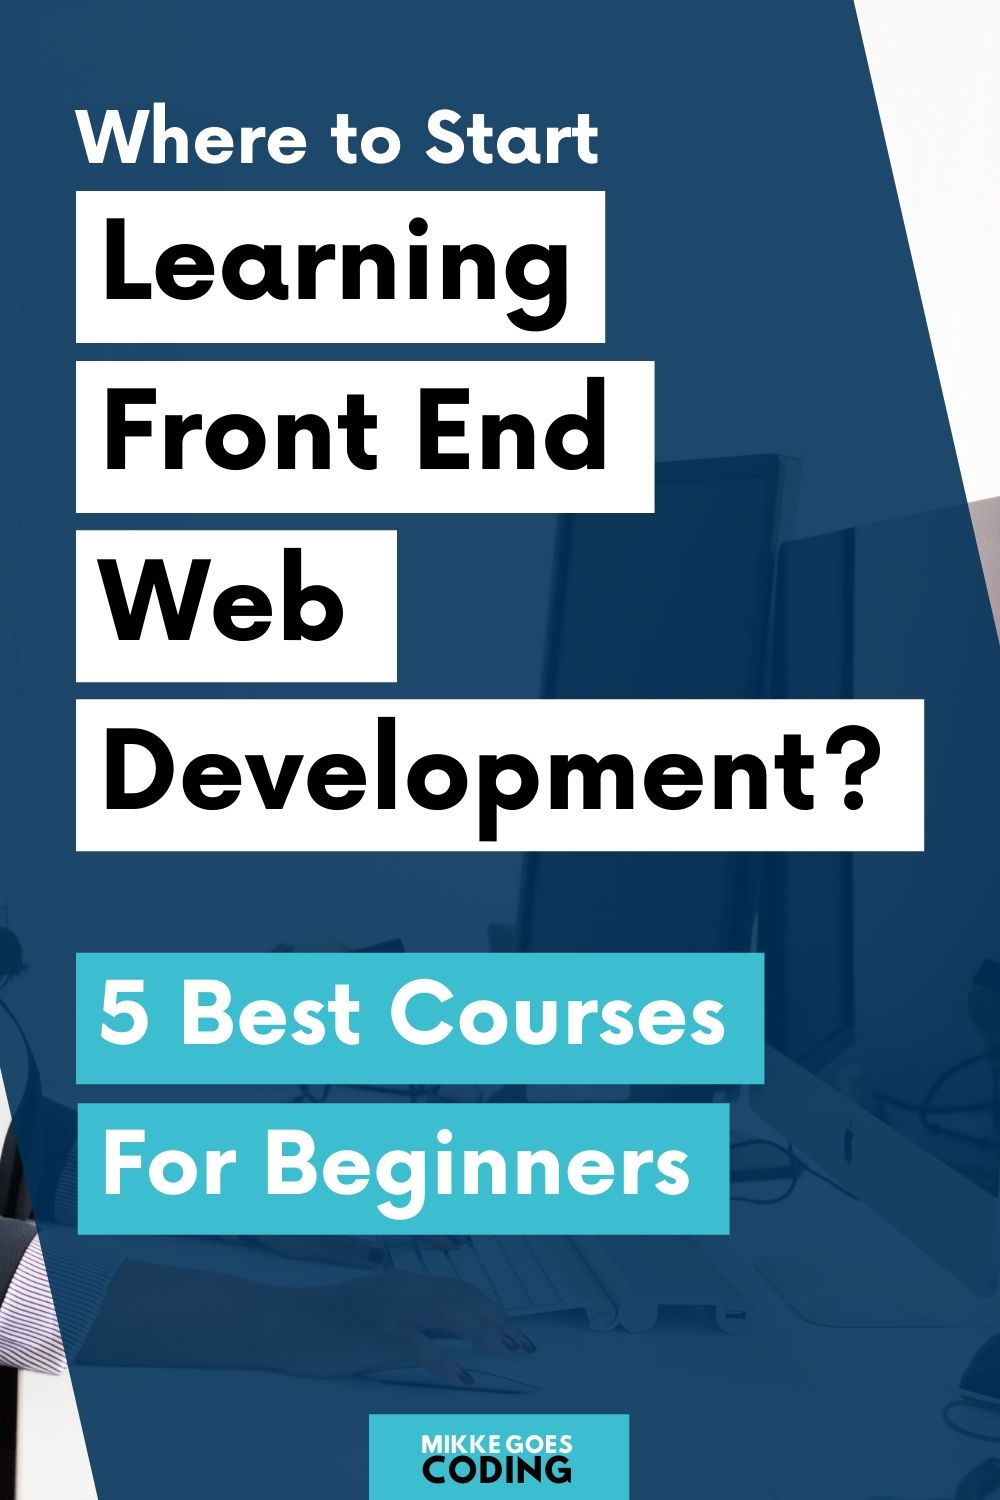 5 Top Web Development Courses For Beginners In 2020 Mikke Goes Web Development Course Learn Web Development Learning Web